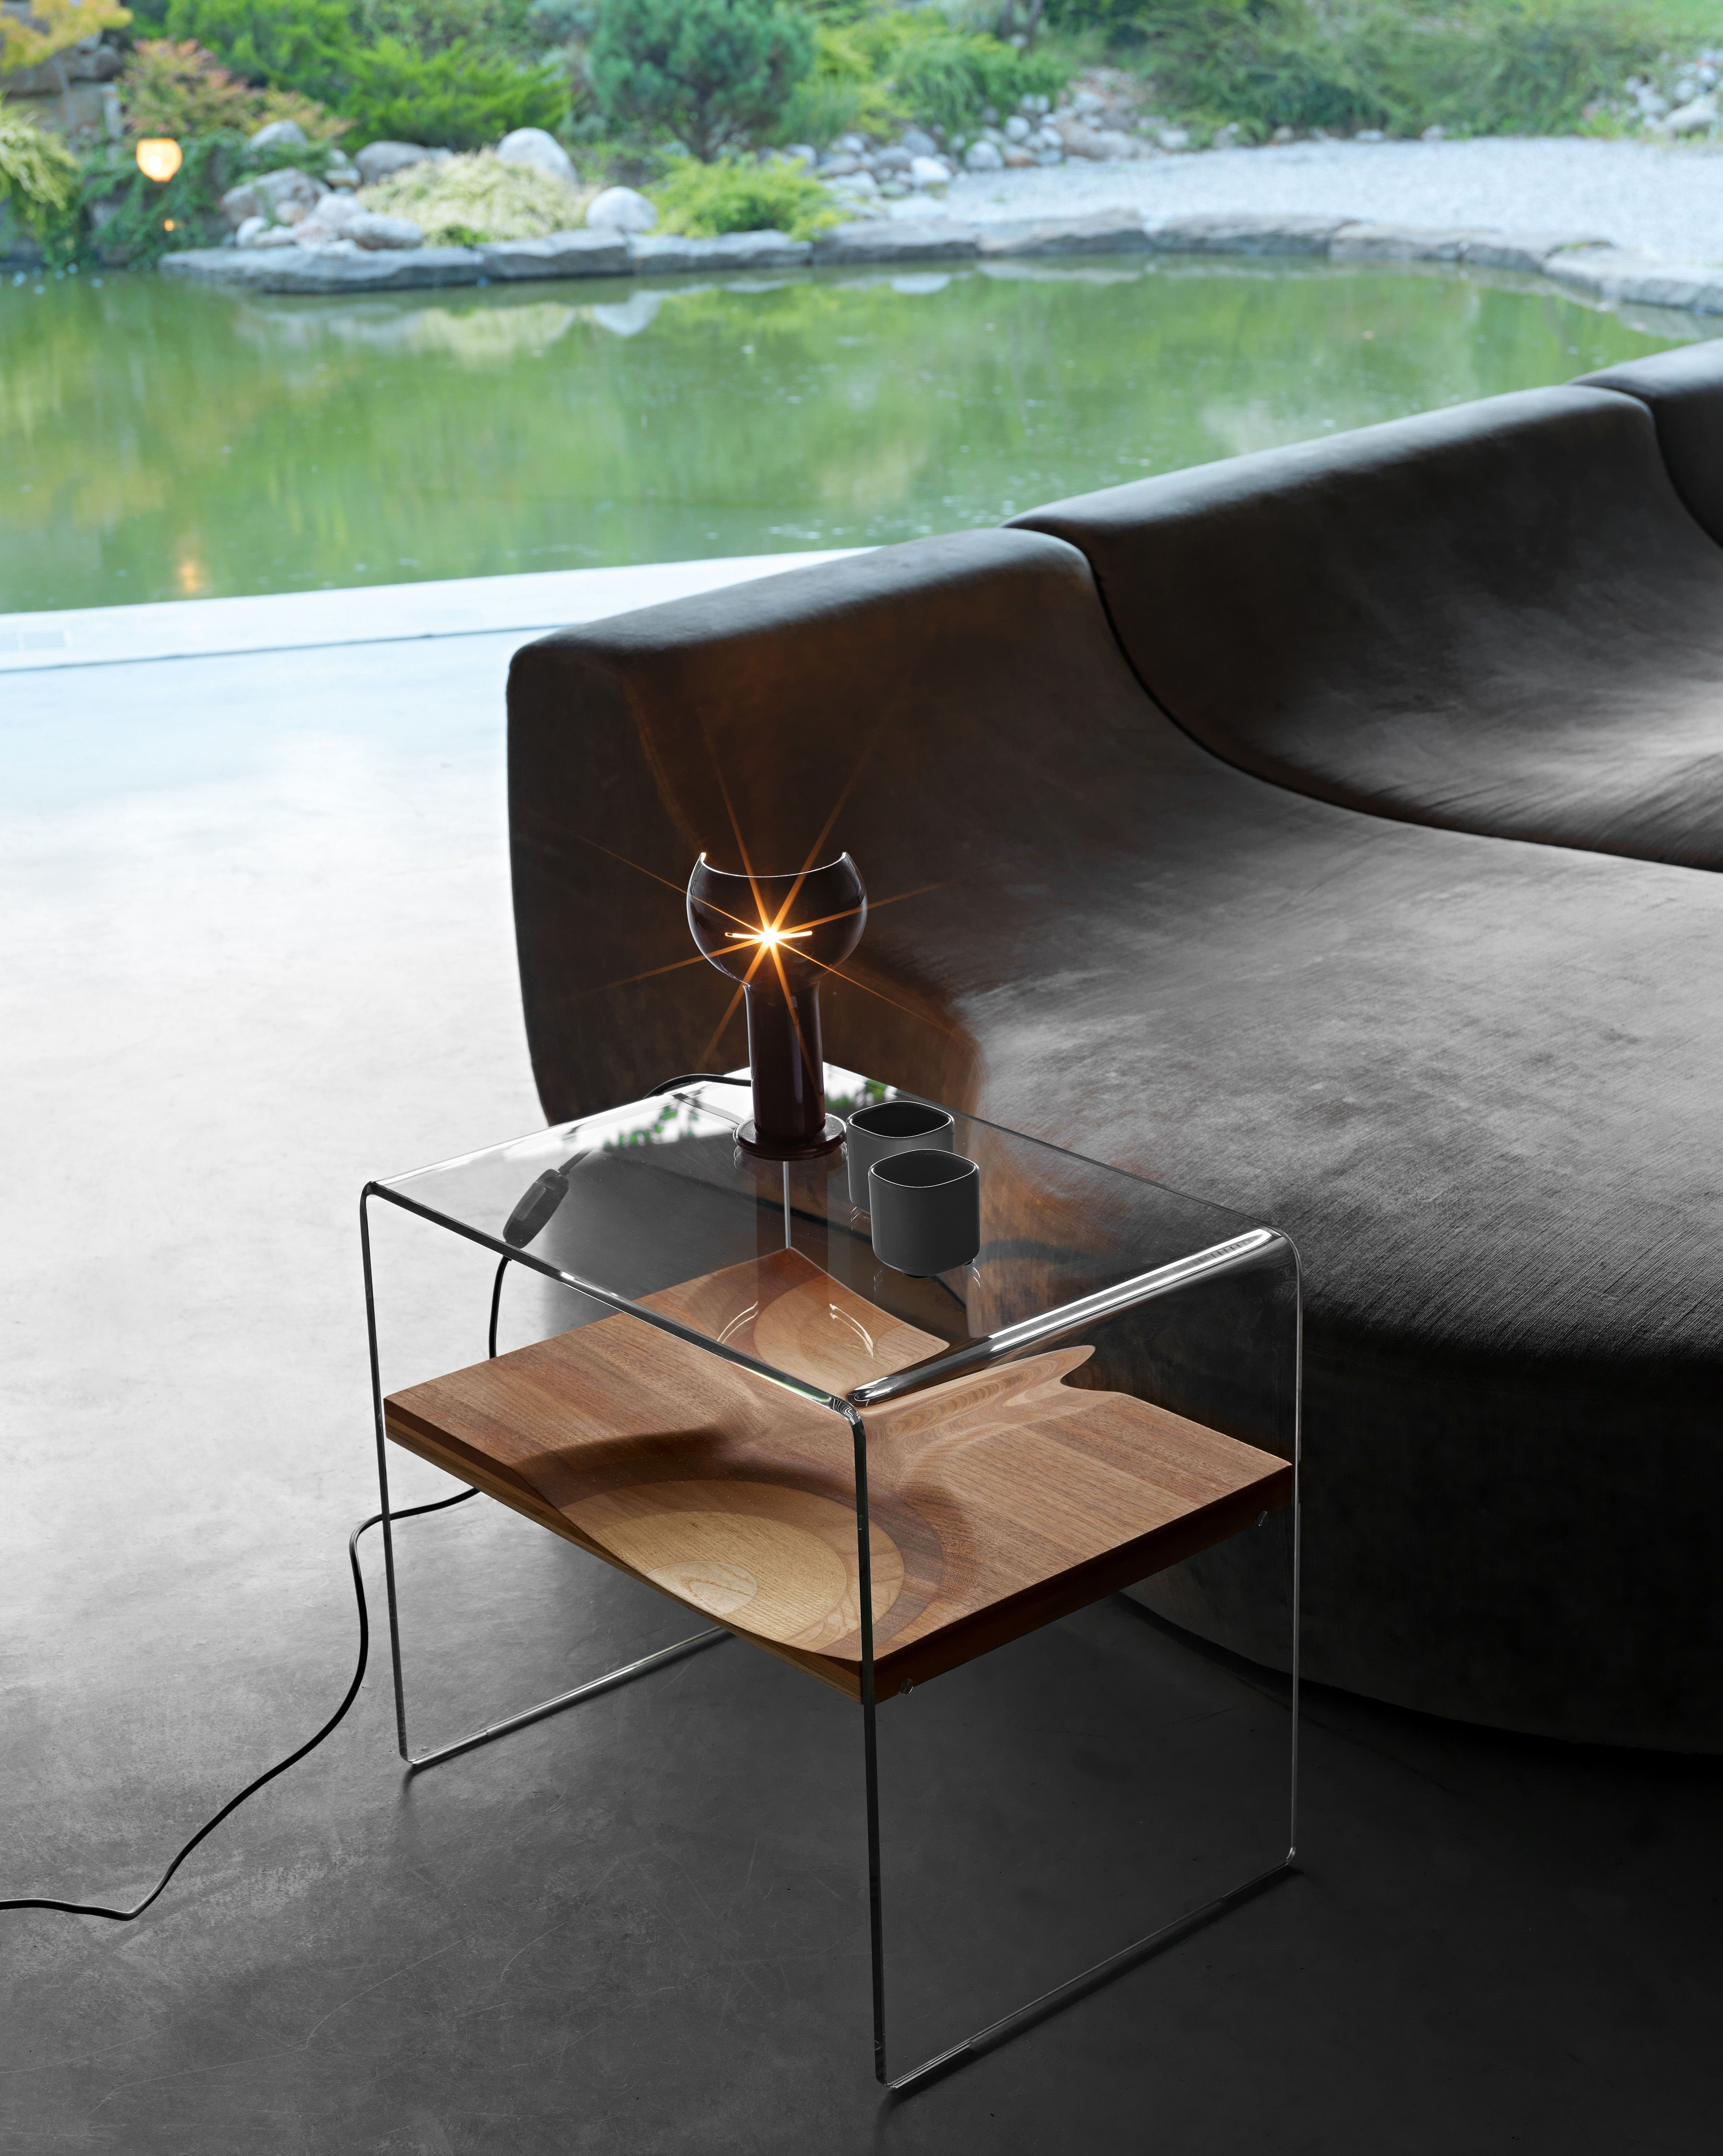 Toyo Ito Architect Ripples Side Table In Glass Composite Of Varied Layered Wood Species Interior Furniture Coffee Table Furniture Side Tables [ 4433 x 3543 Pixel ]